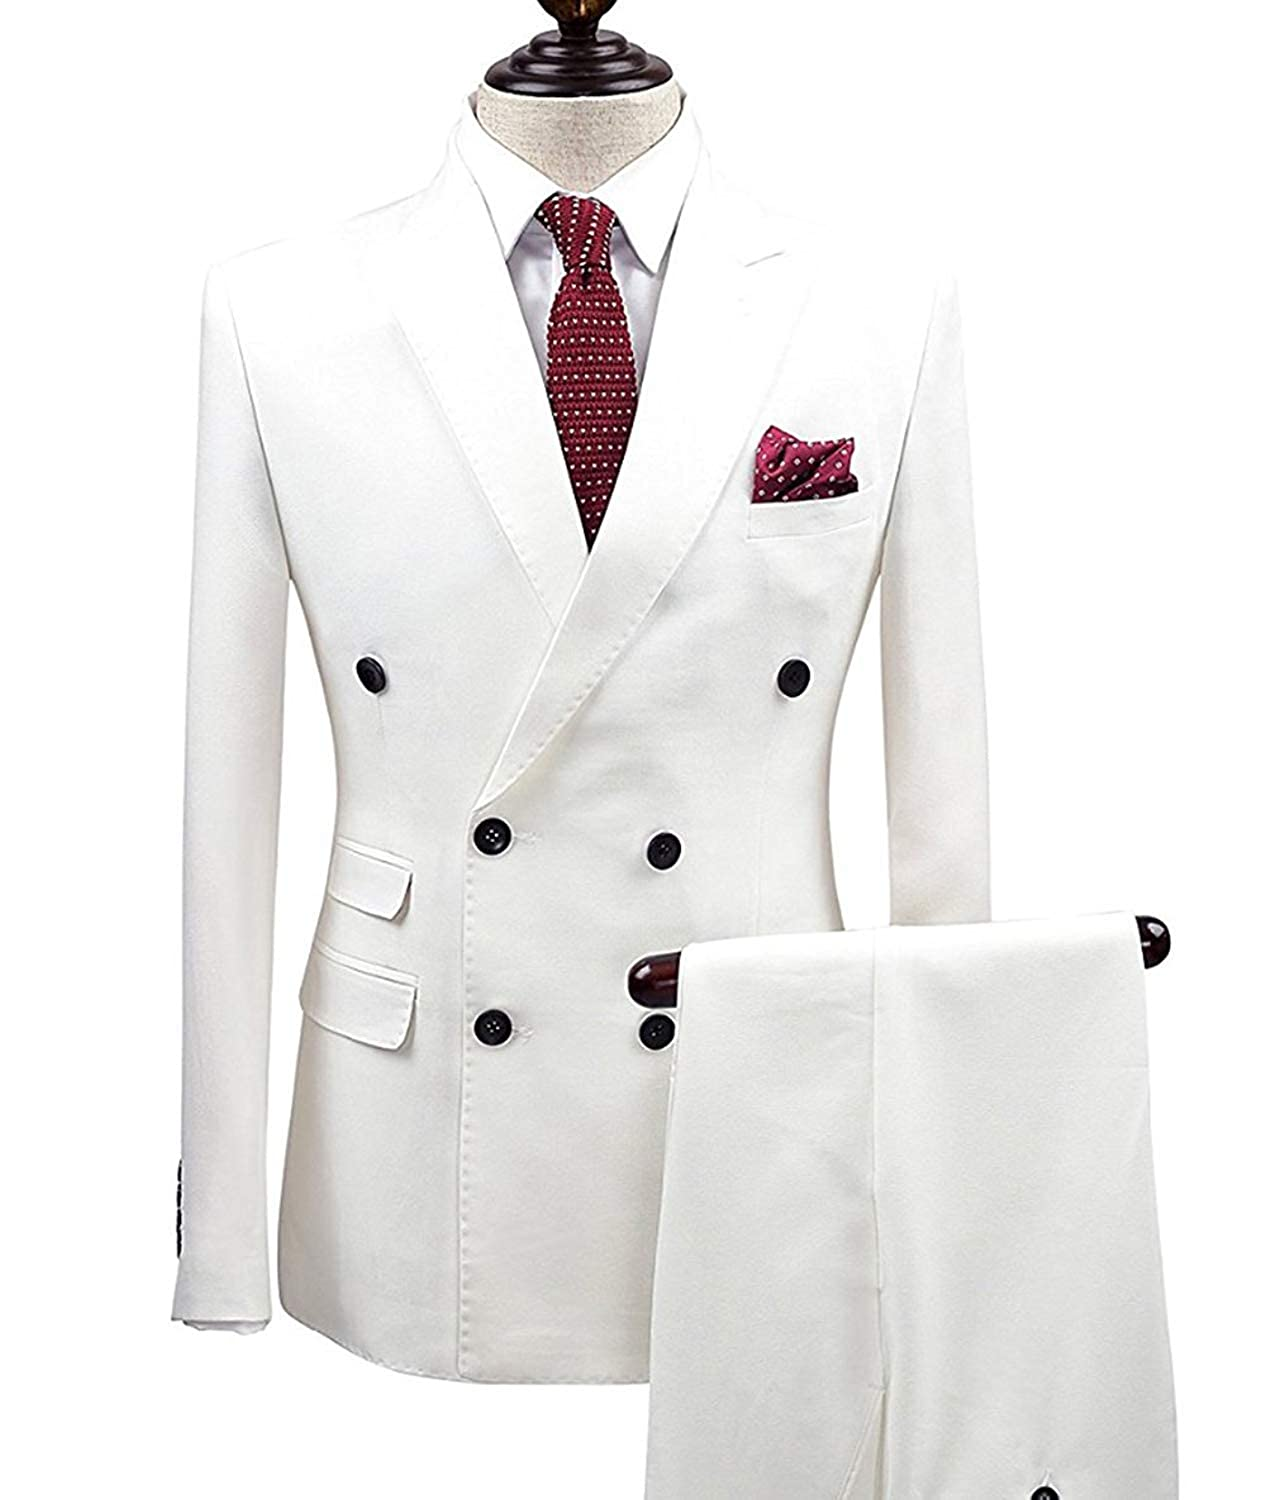 LoveeToo Men Suits White 2 Piece Double Breasted Blazer Wedding Business Suits